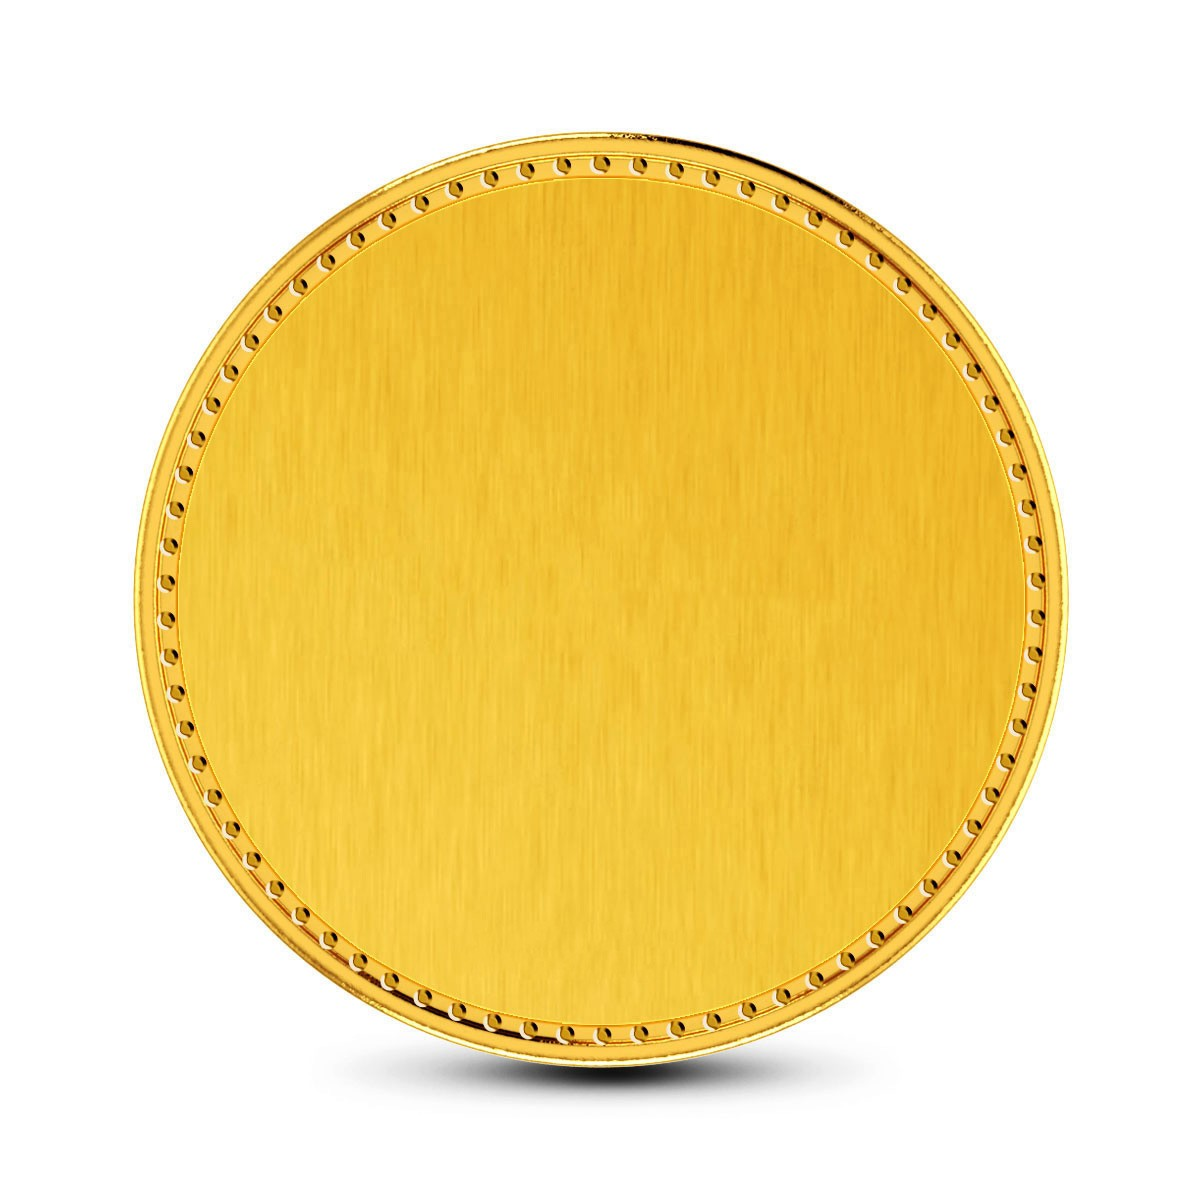 8 Gram 24Kt Plain Gold Coin